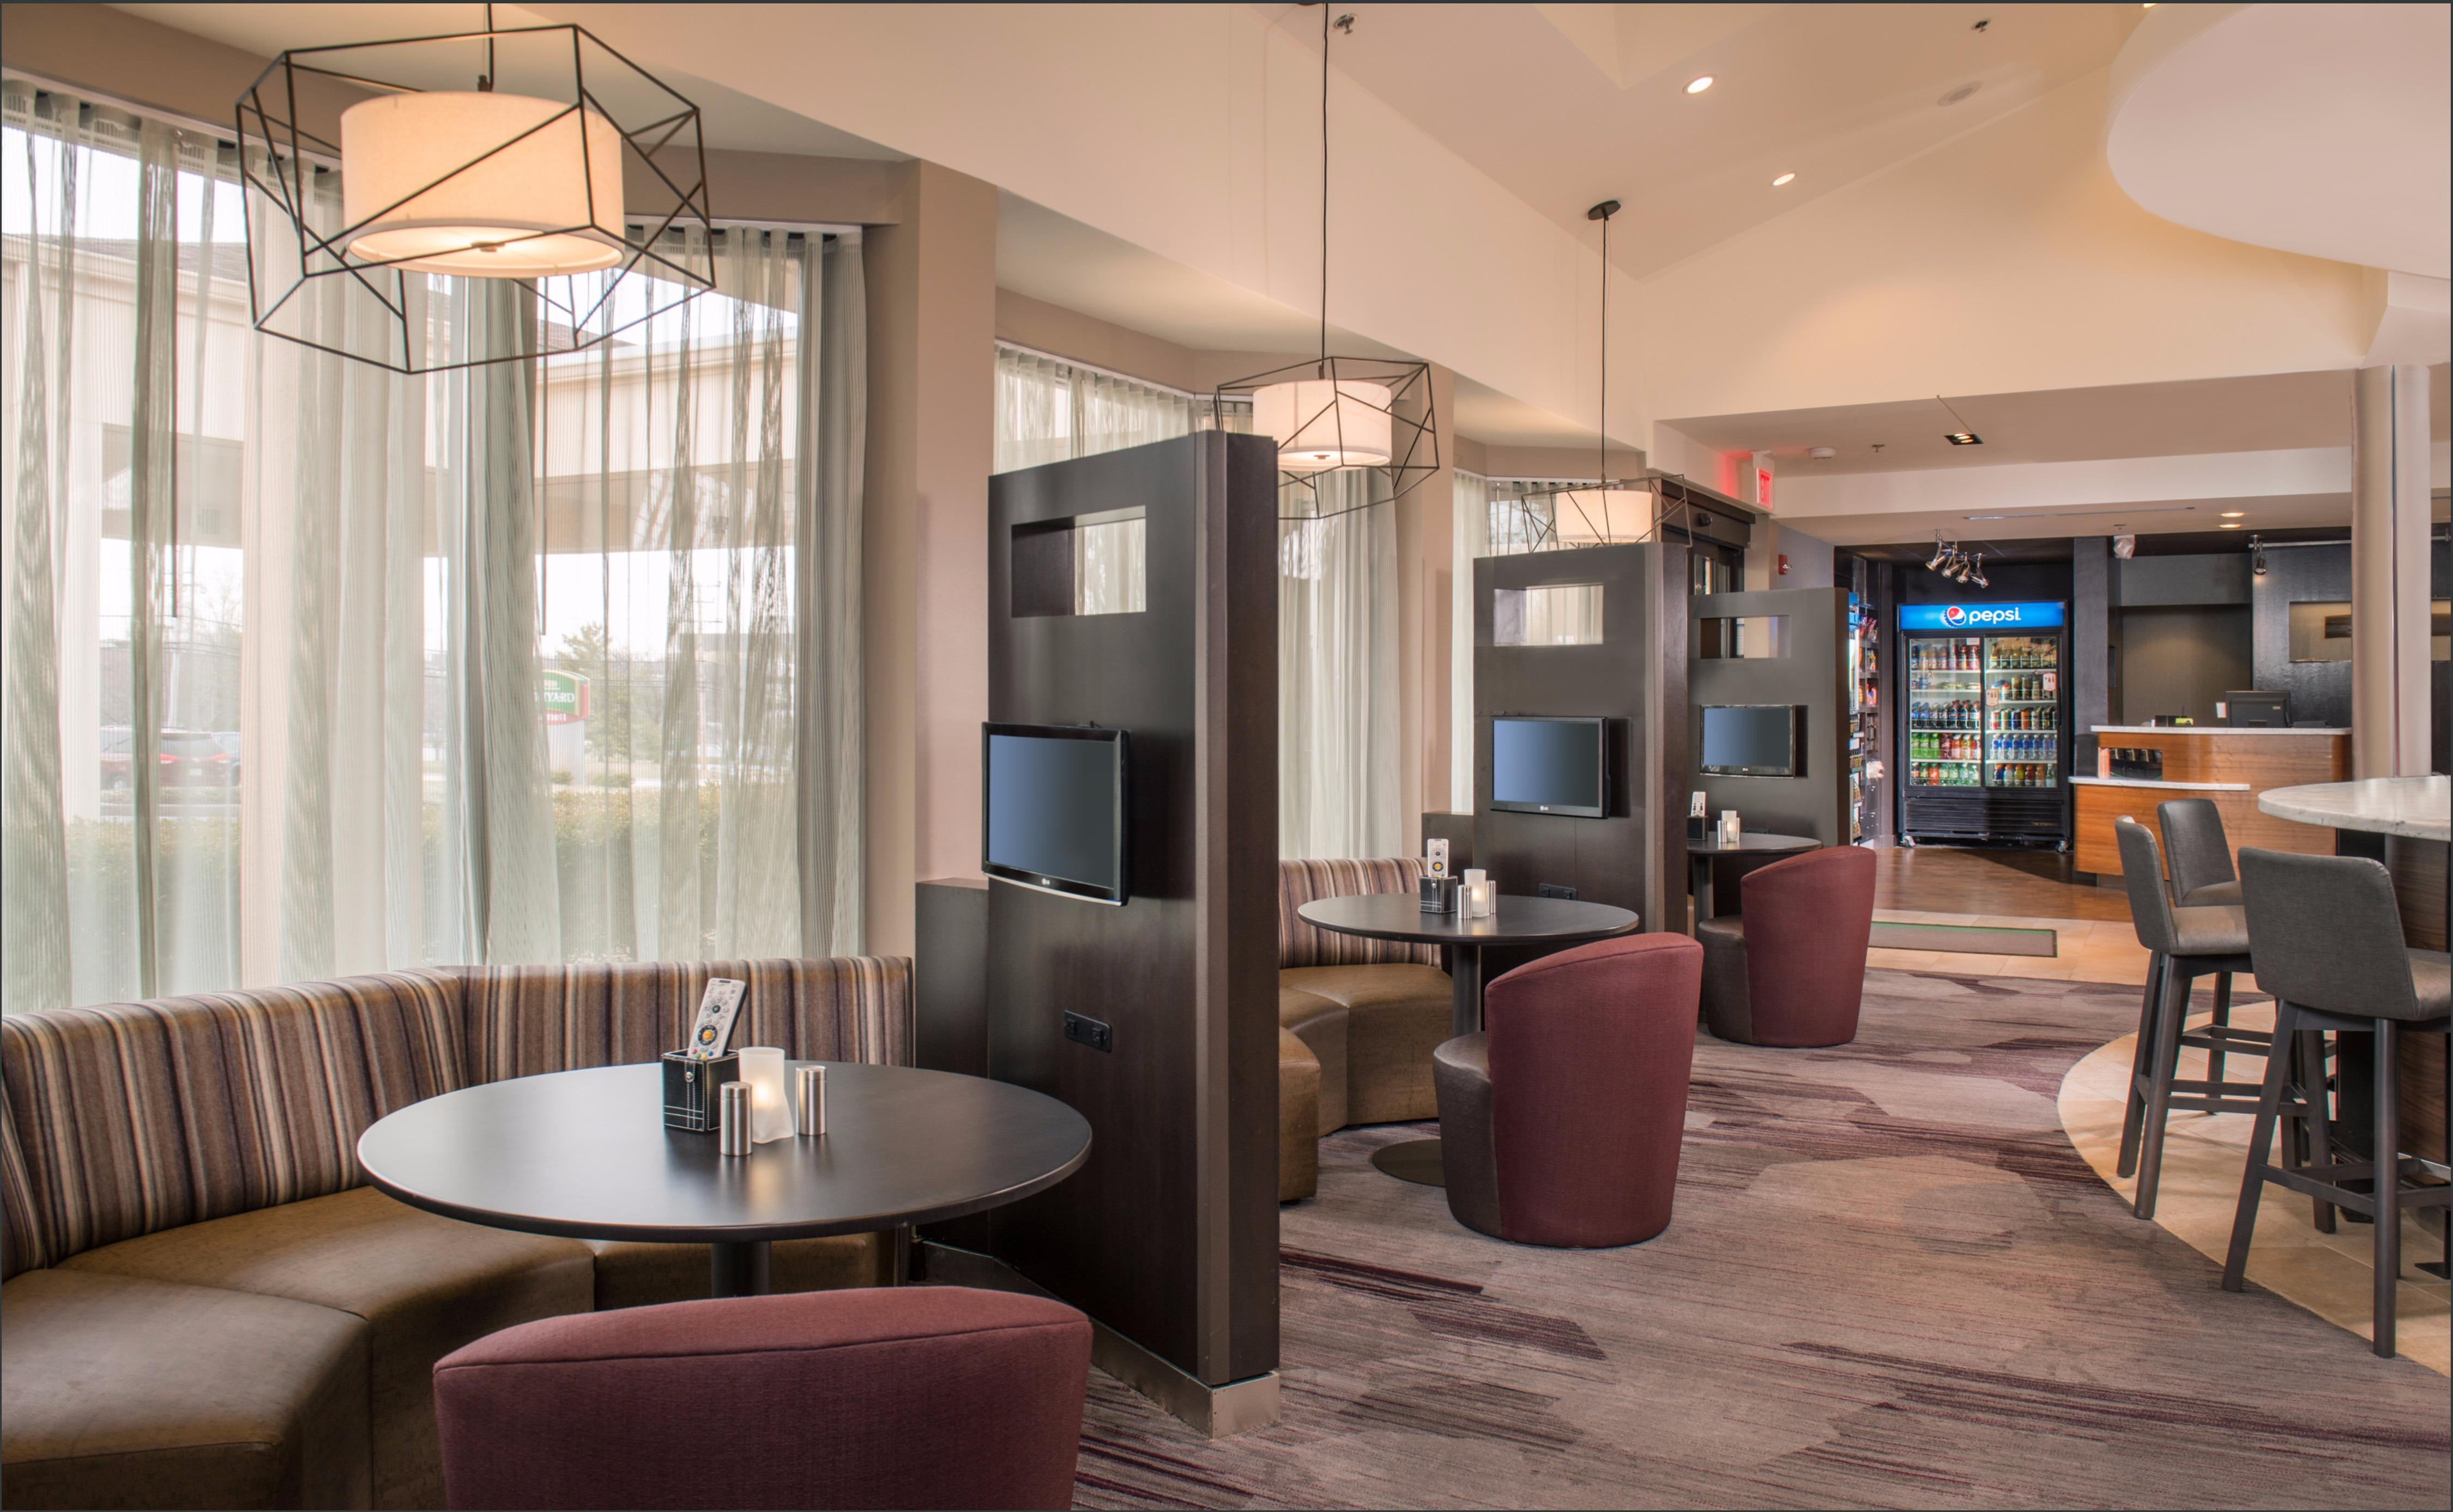 Courtyard by Marriott Baltimore BWI Airport image 9